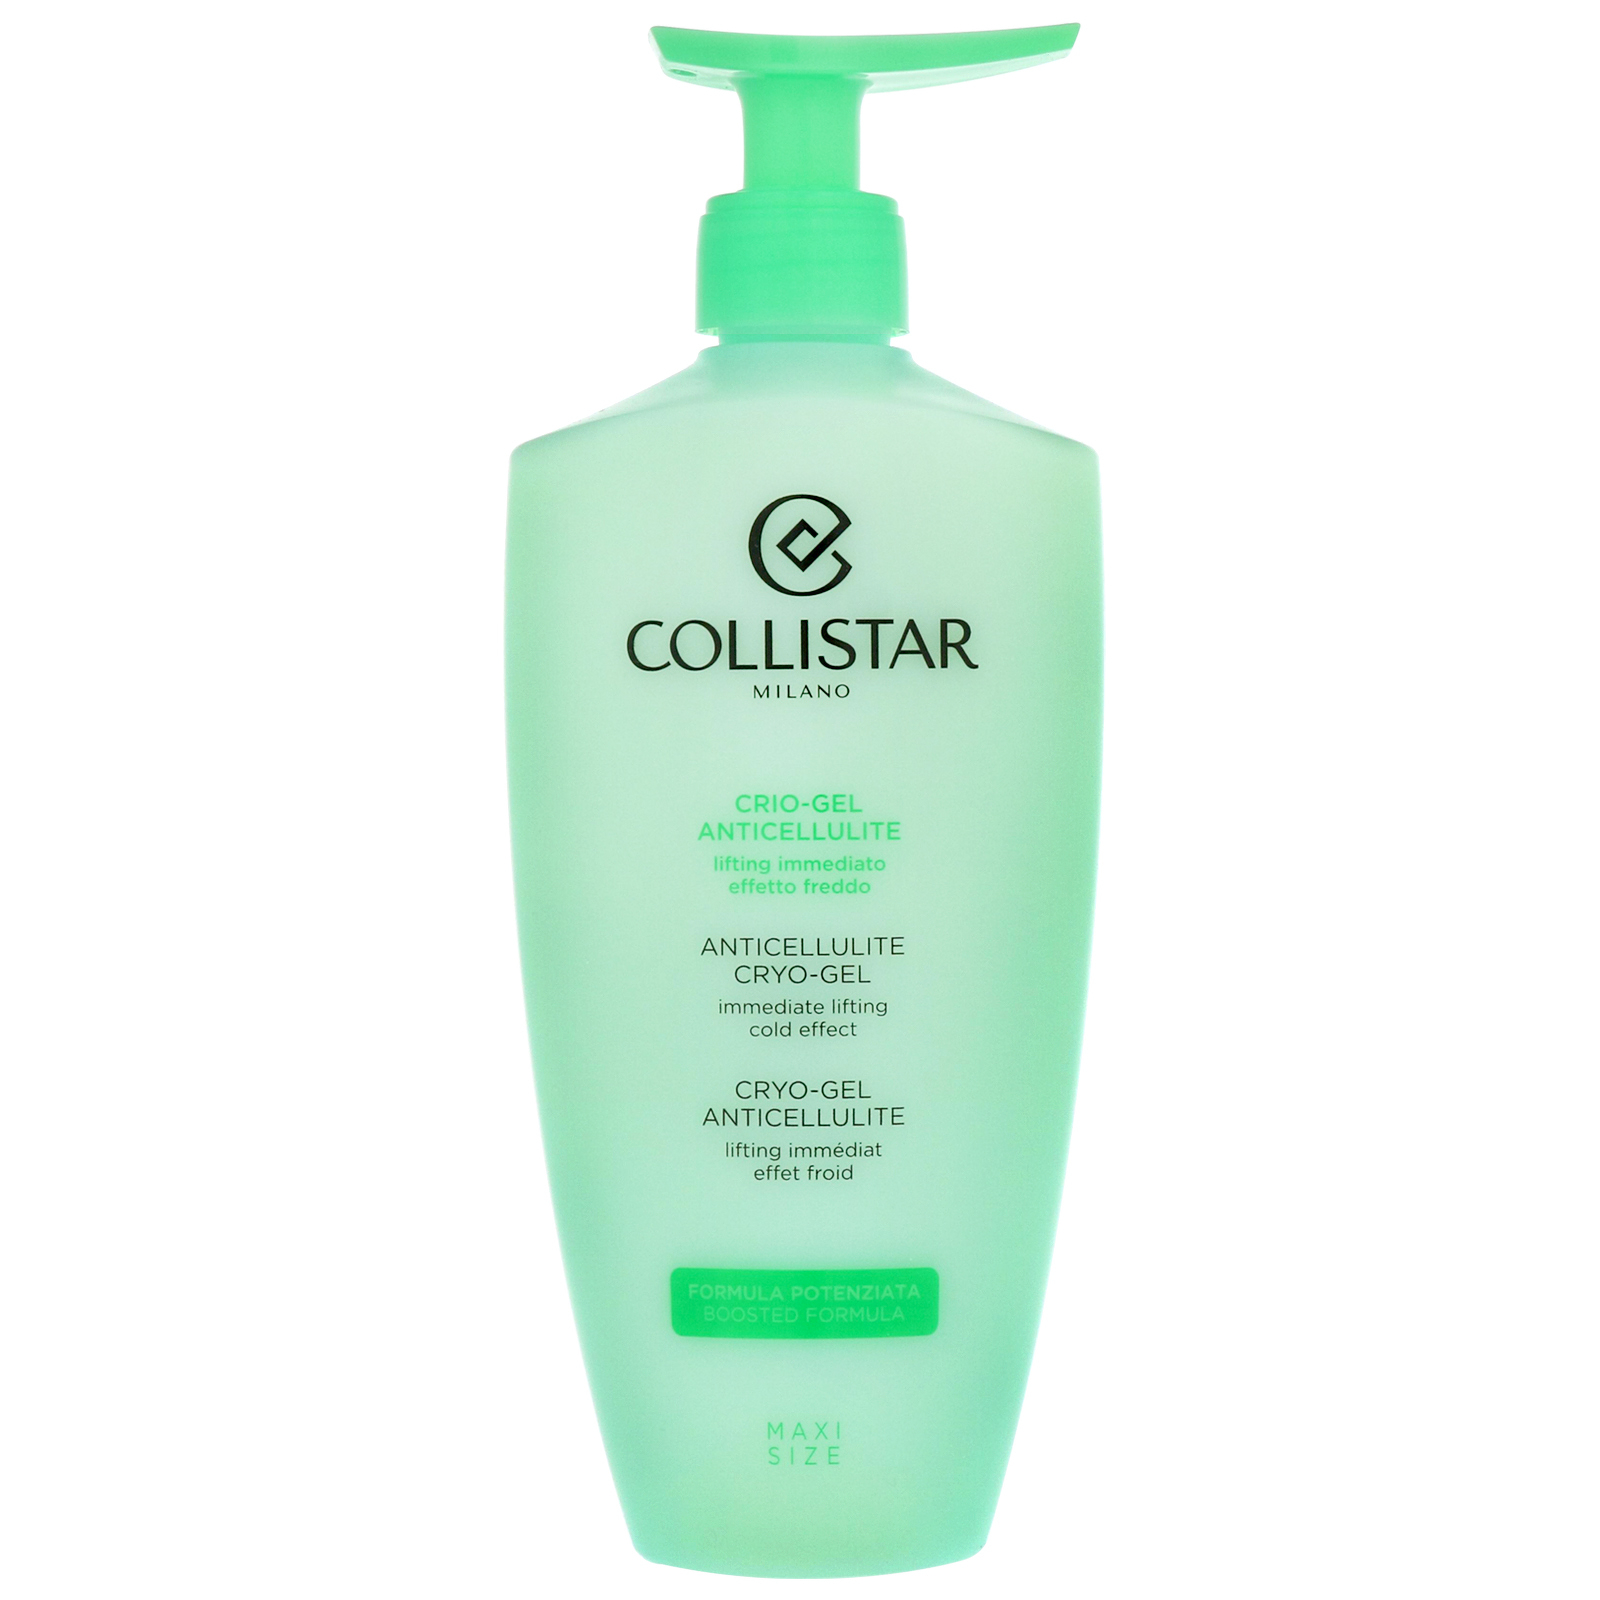 Collistar Slimming, Firming & Anti-Cellulite Anticellulite Cryo-Gel 400ml